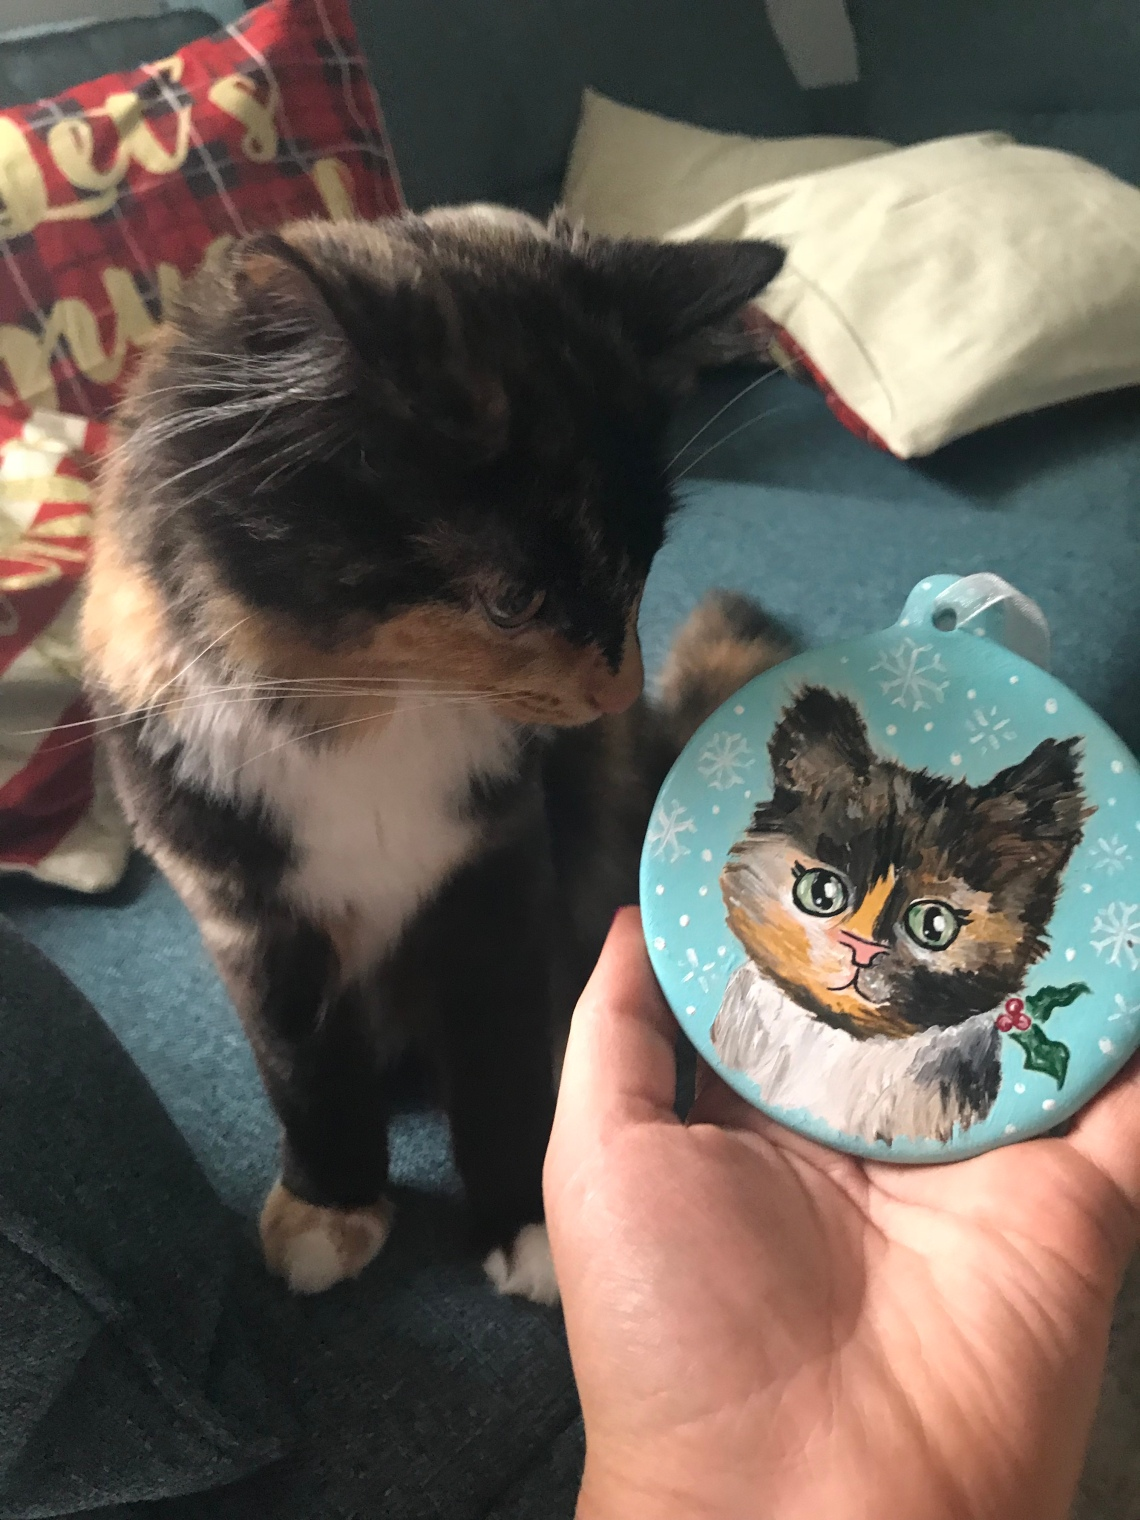 *Kali bauble painted by me!